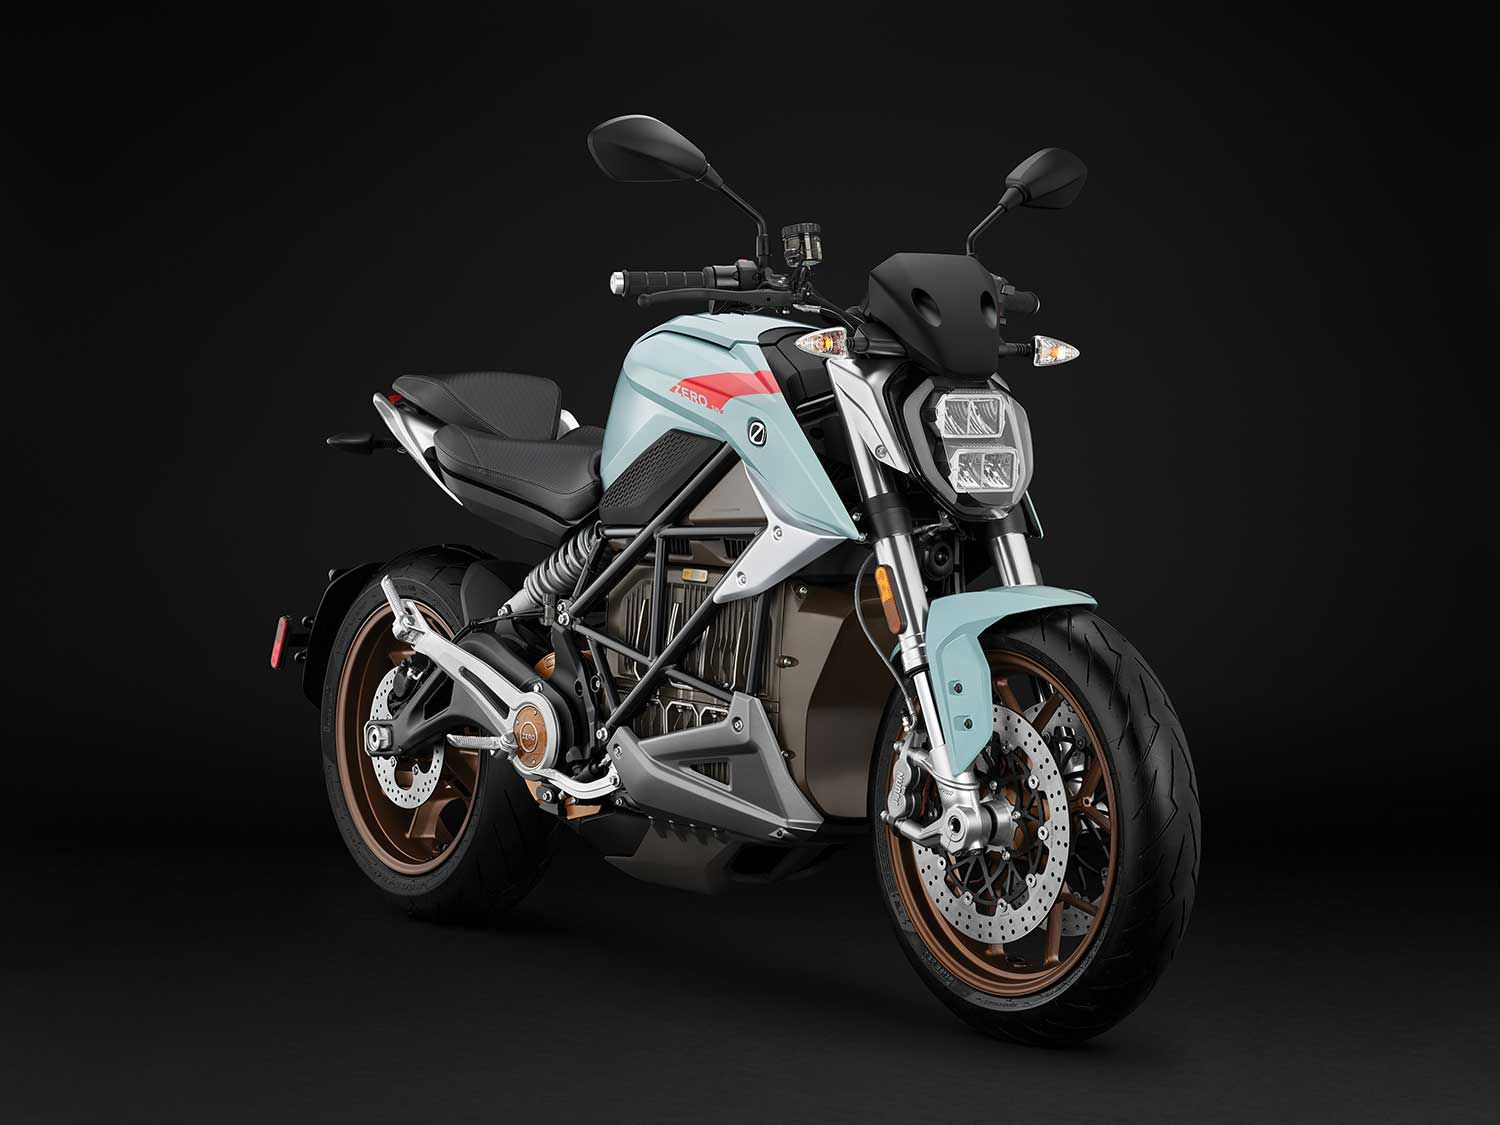 "<a  href=""https://www.motorcyclistonline.com/story/reviews/2020-zero-motorcycles-sr-f-review-mc-commute/"">Zero Motorcycles SR/F <em>MC Commute</em> Review</a>"